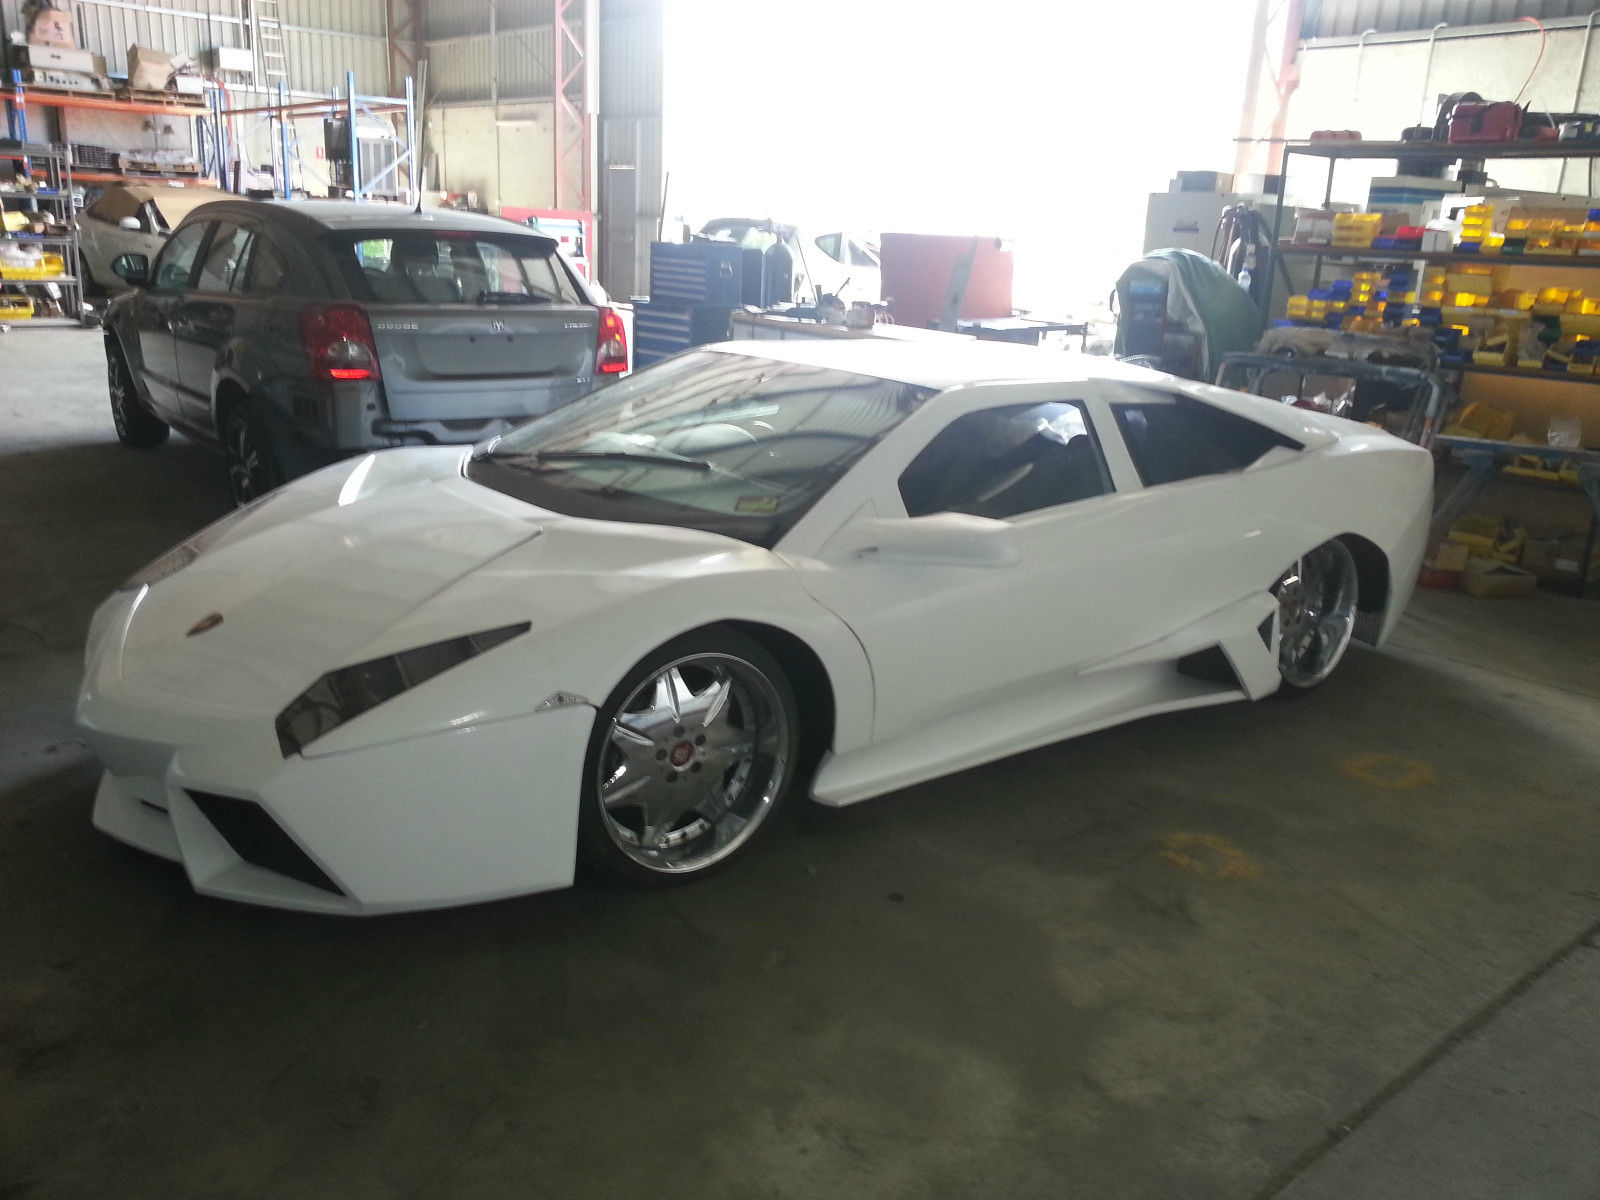 White Lamborghini Reventon Replica For Sale In Australia